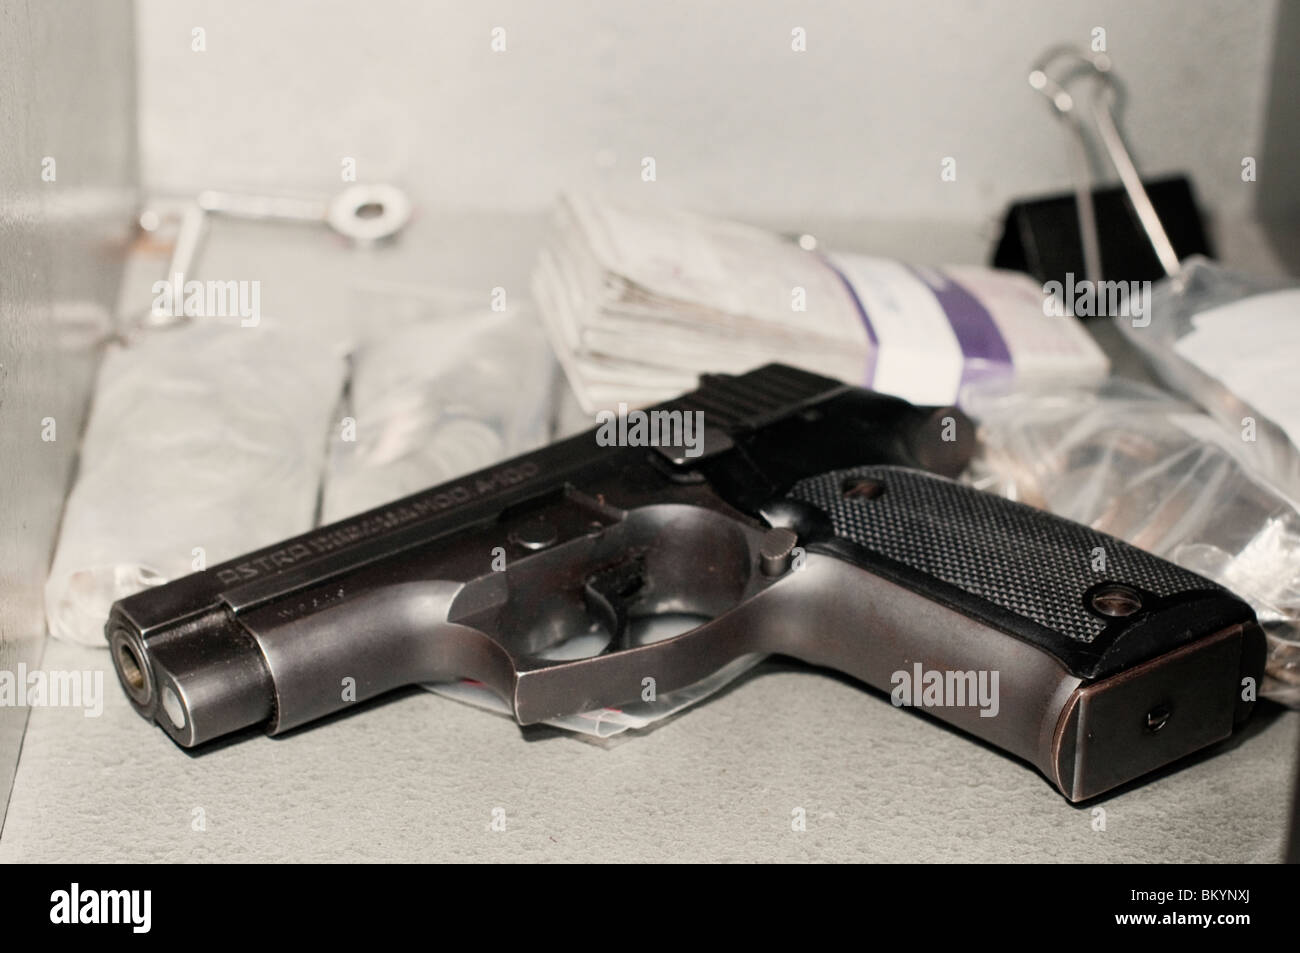 Handgun and valuables in secure safe - Stock Image